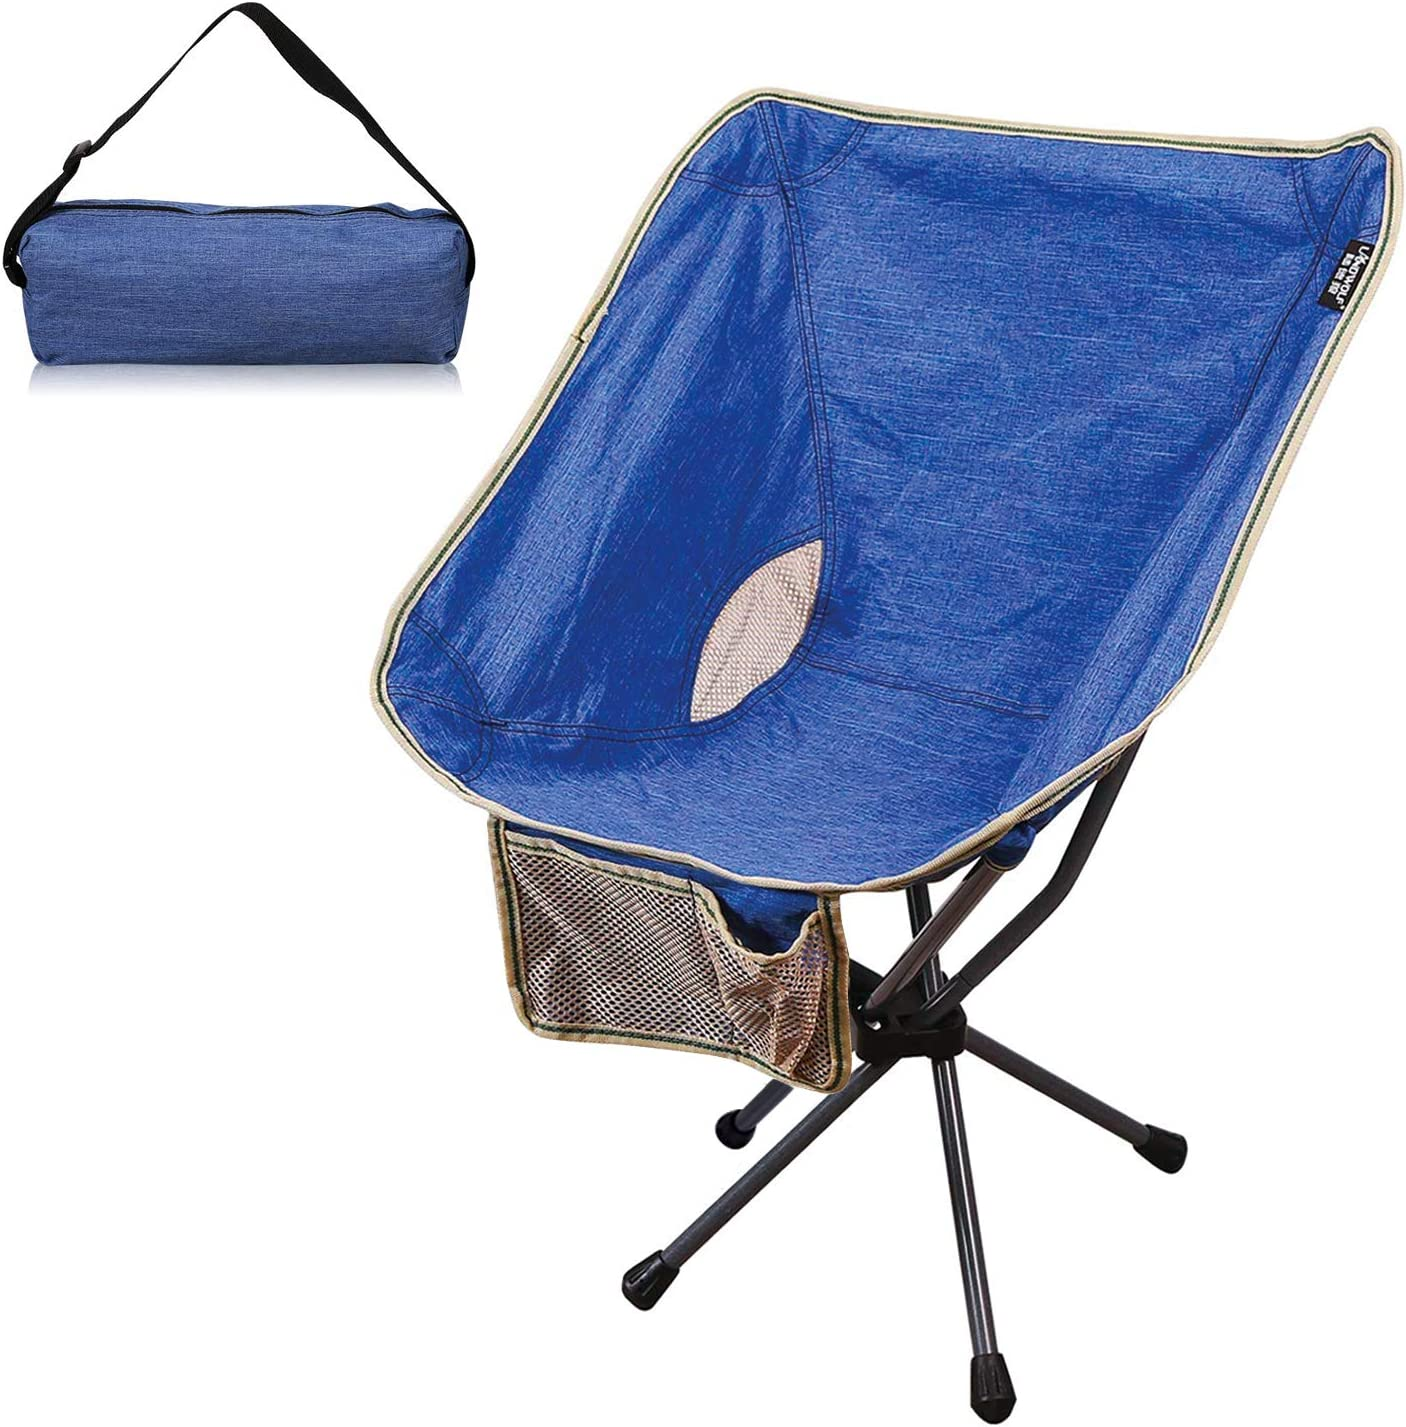 Galsoar Camping Chairs, Outdoor Portable Backpacking Folding Chairs with Carry Bag, Heavy Duty 300 lbs Capacity, for BBQ, Beach, Travel, Picnic, Hiking, Fishing